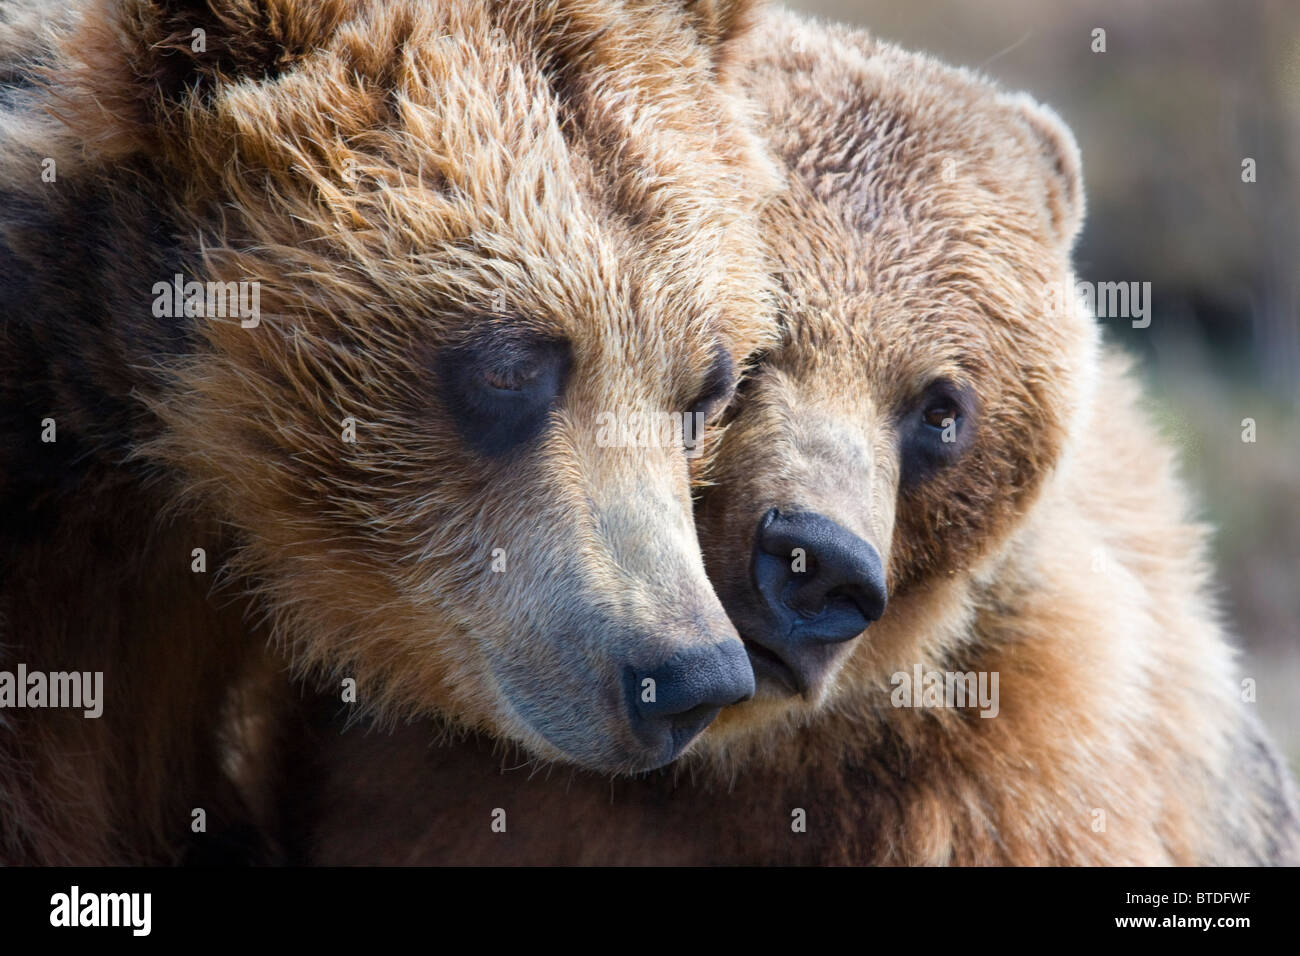 CAPTIVE Grizzly bears playing at the Alaska Wildlife Conservation Center CAPTIVE - Stock Image